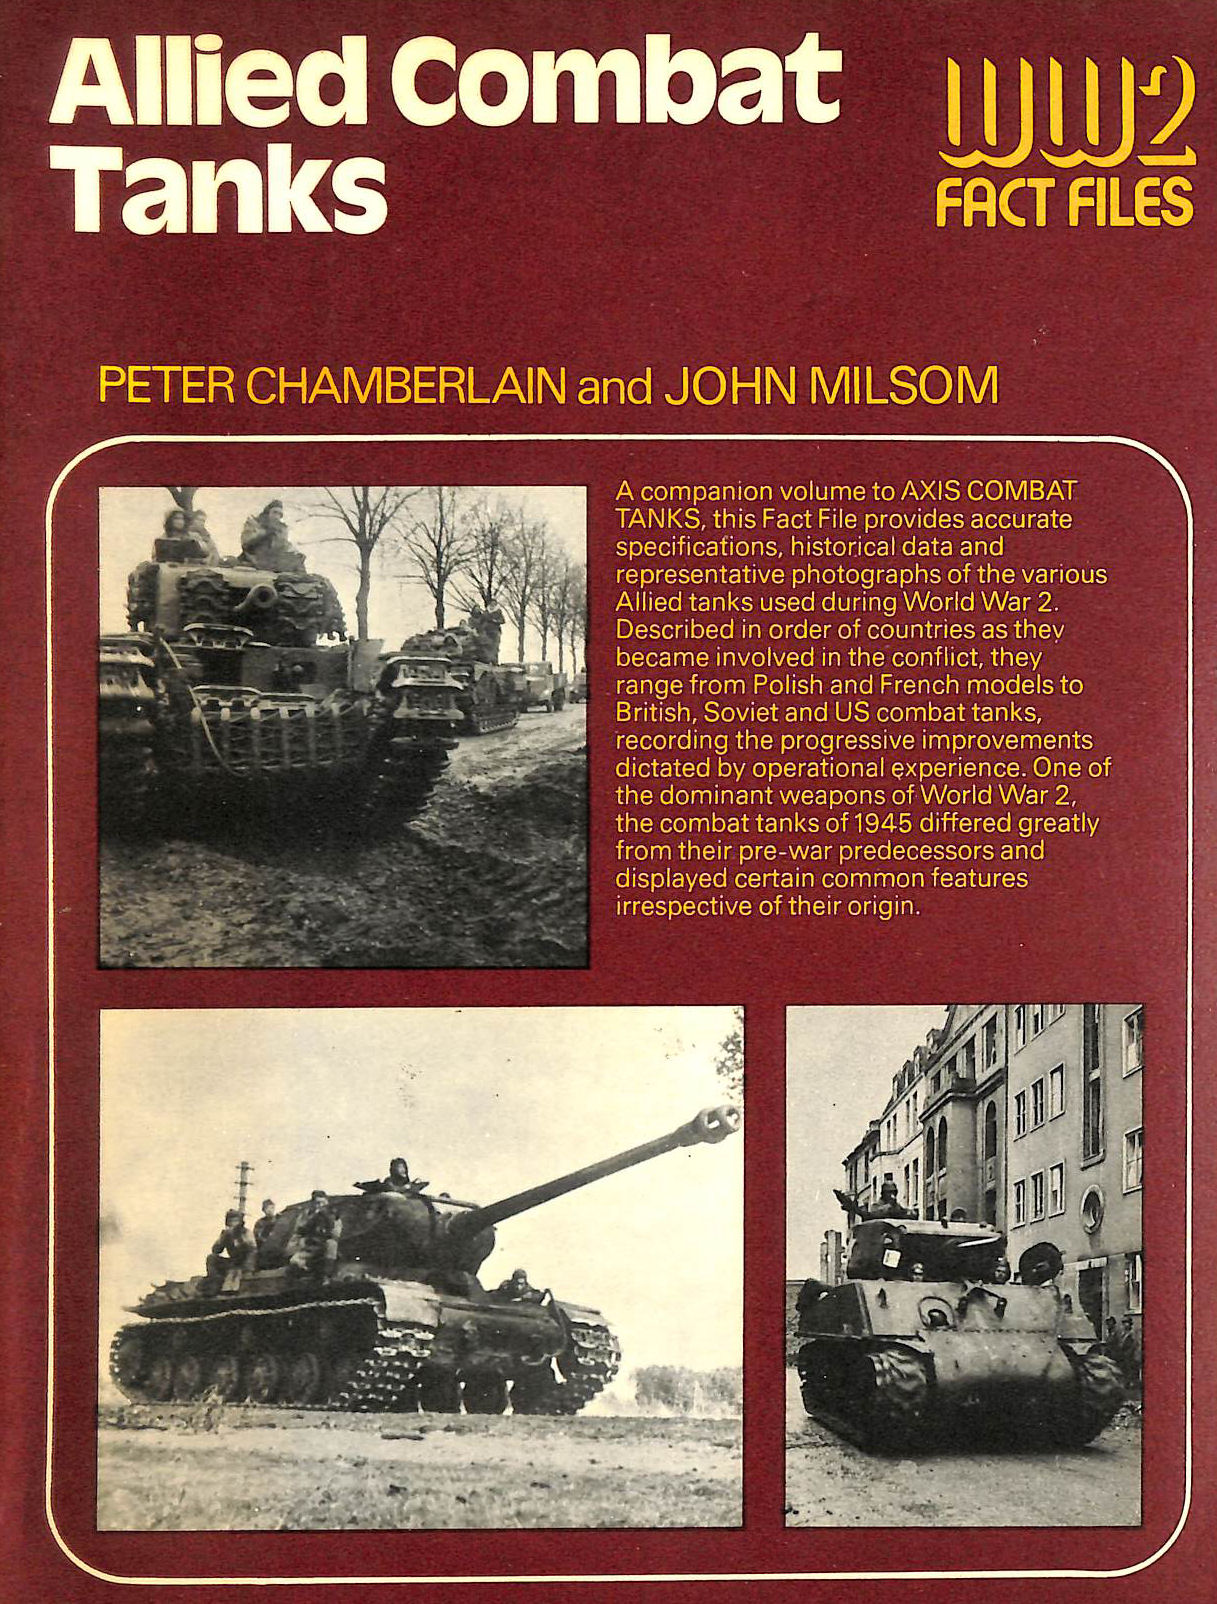 Image for Allied combat tanks (World War 2 fact files)